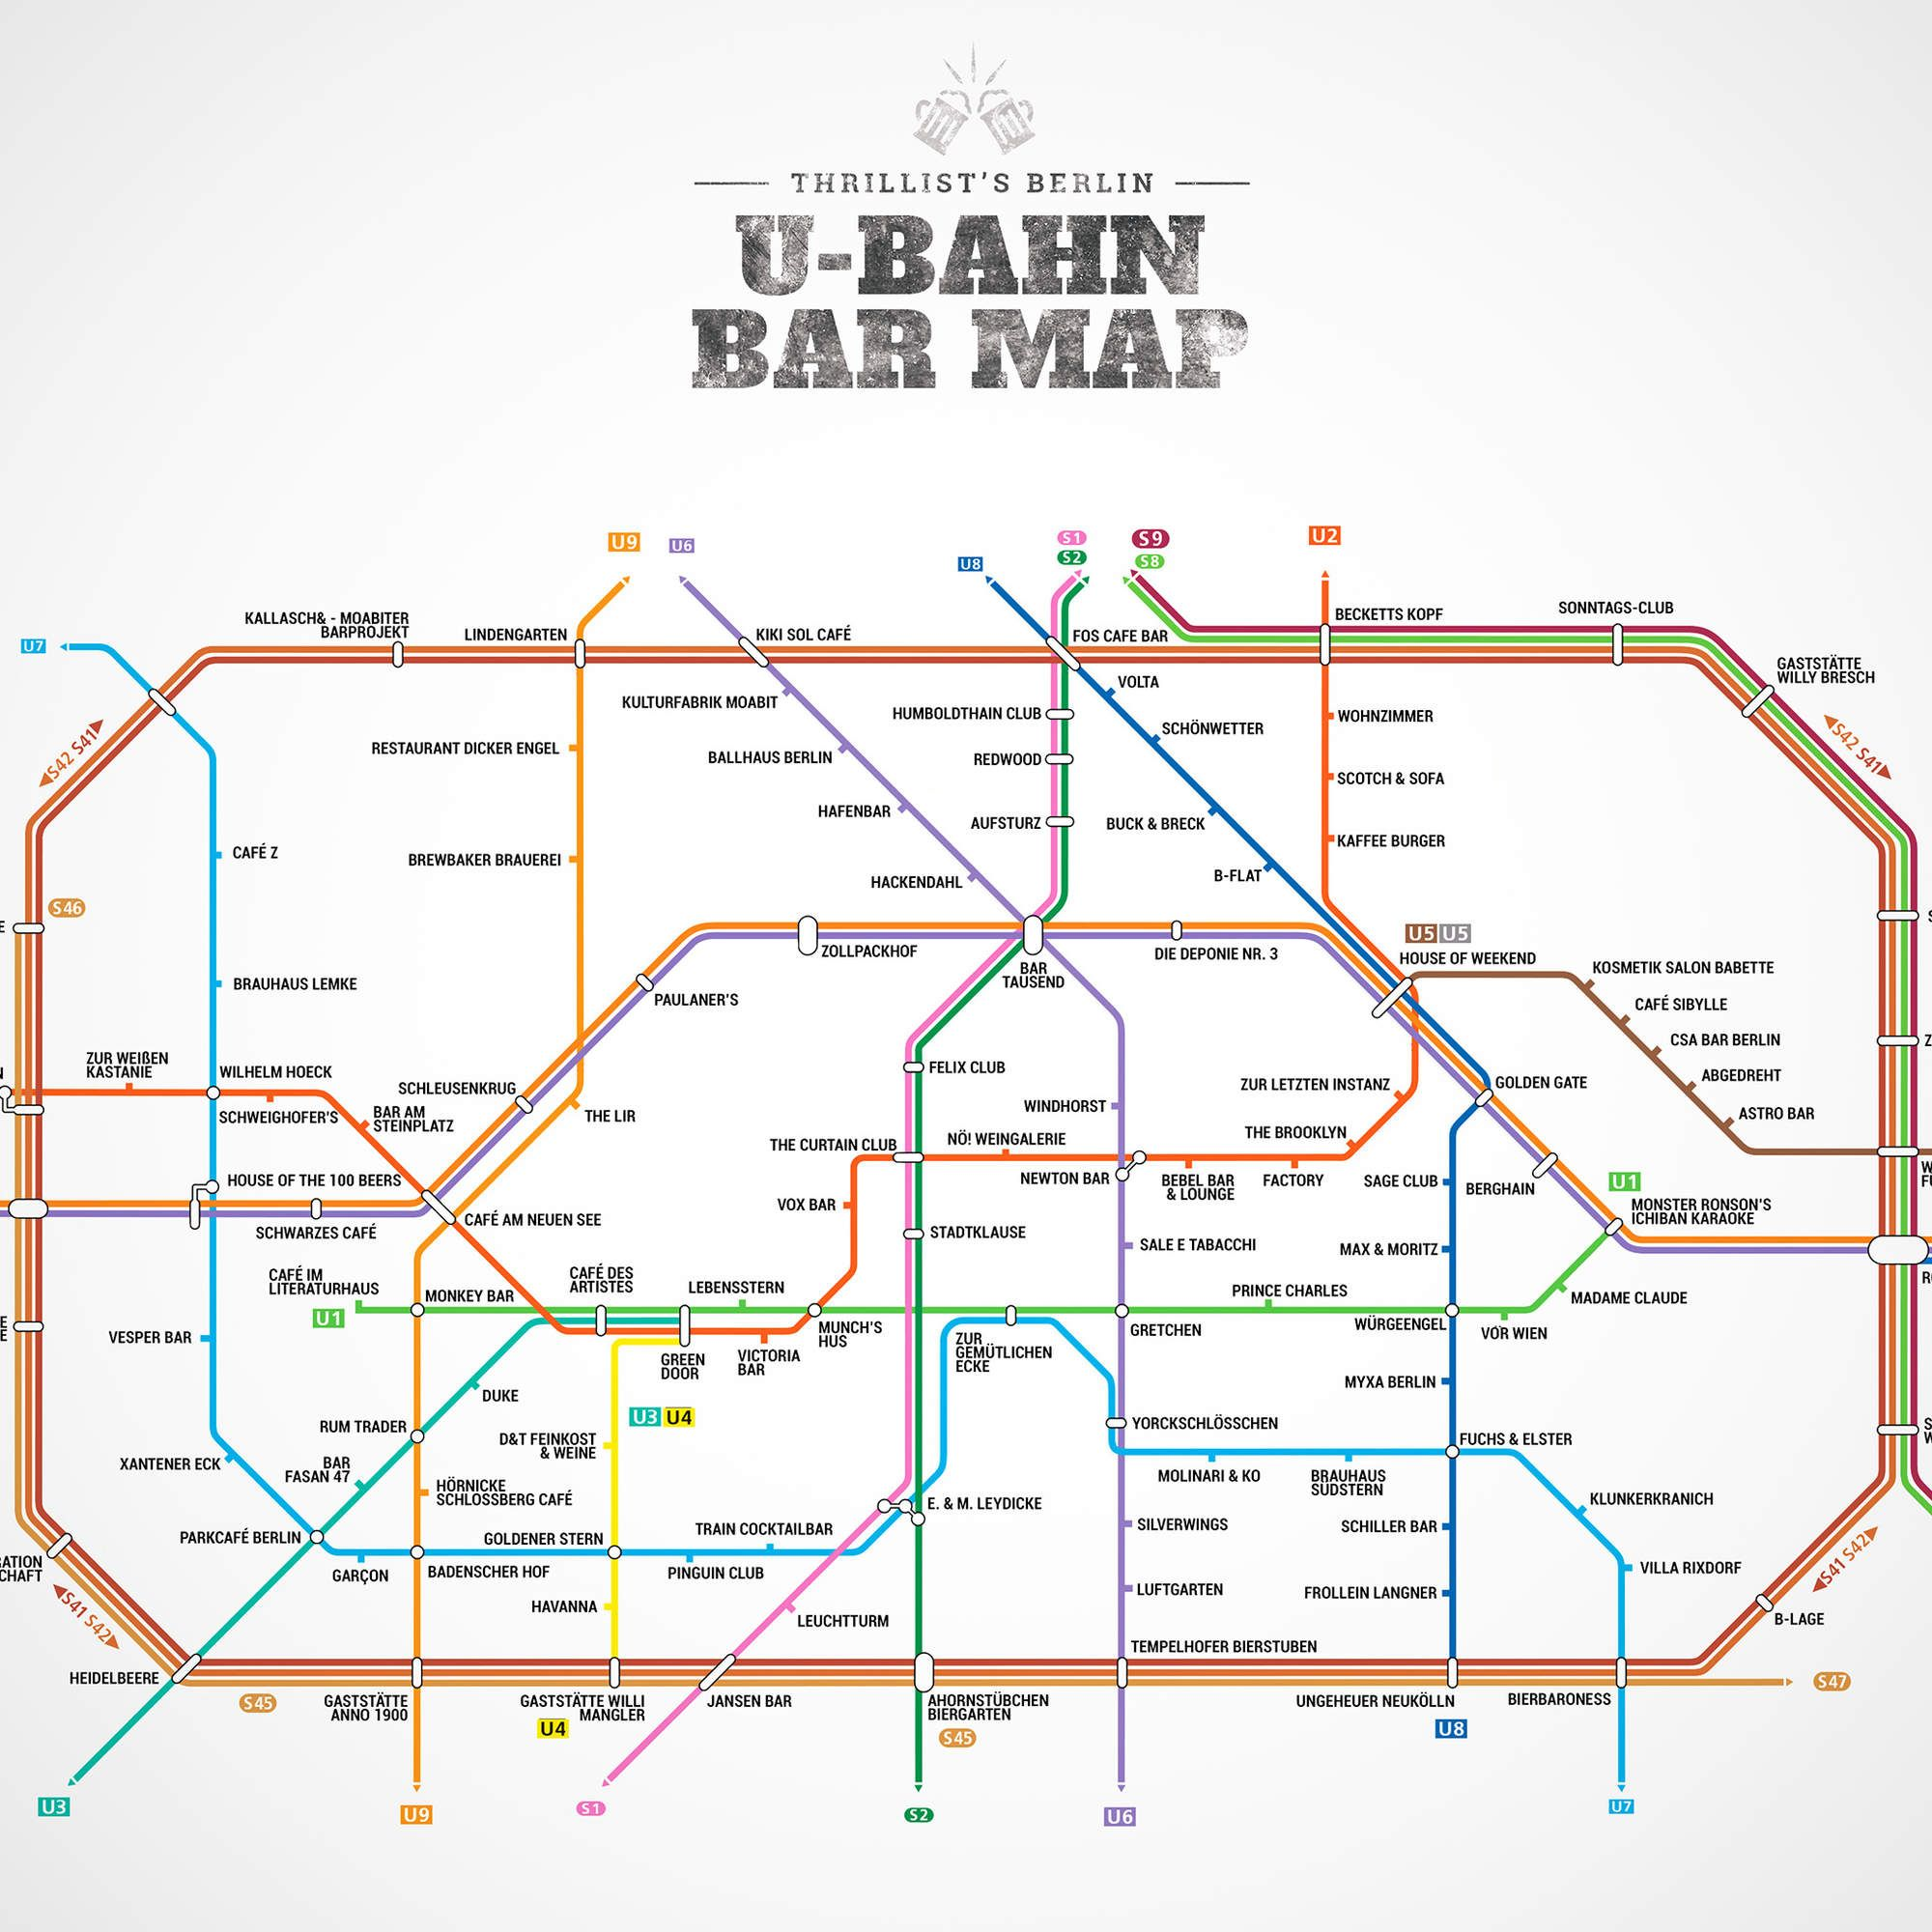 Berlins Firstever UBahn Bar Map Bar Munich And Berlin Berlin - Berlin us bahn map